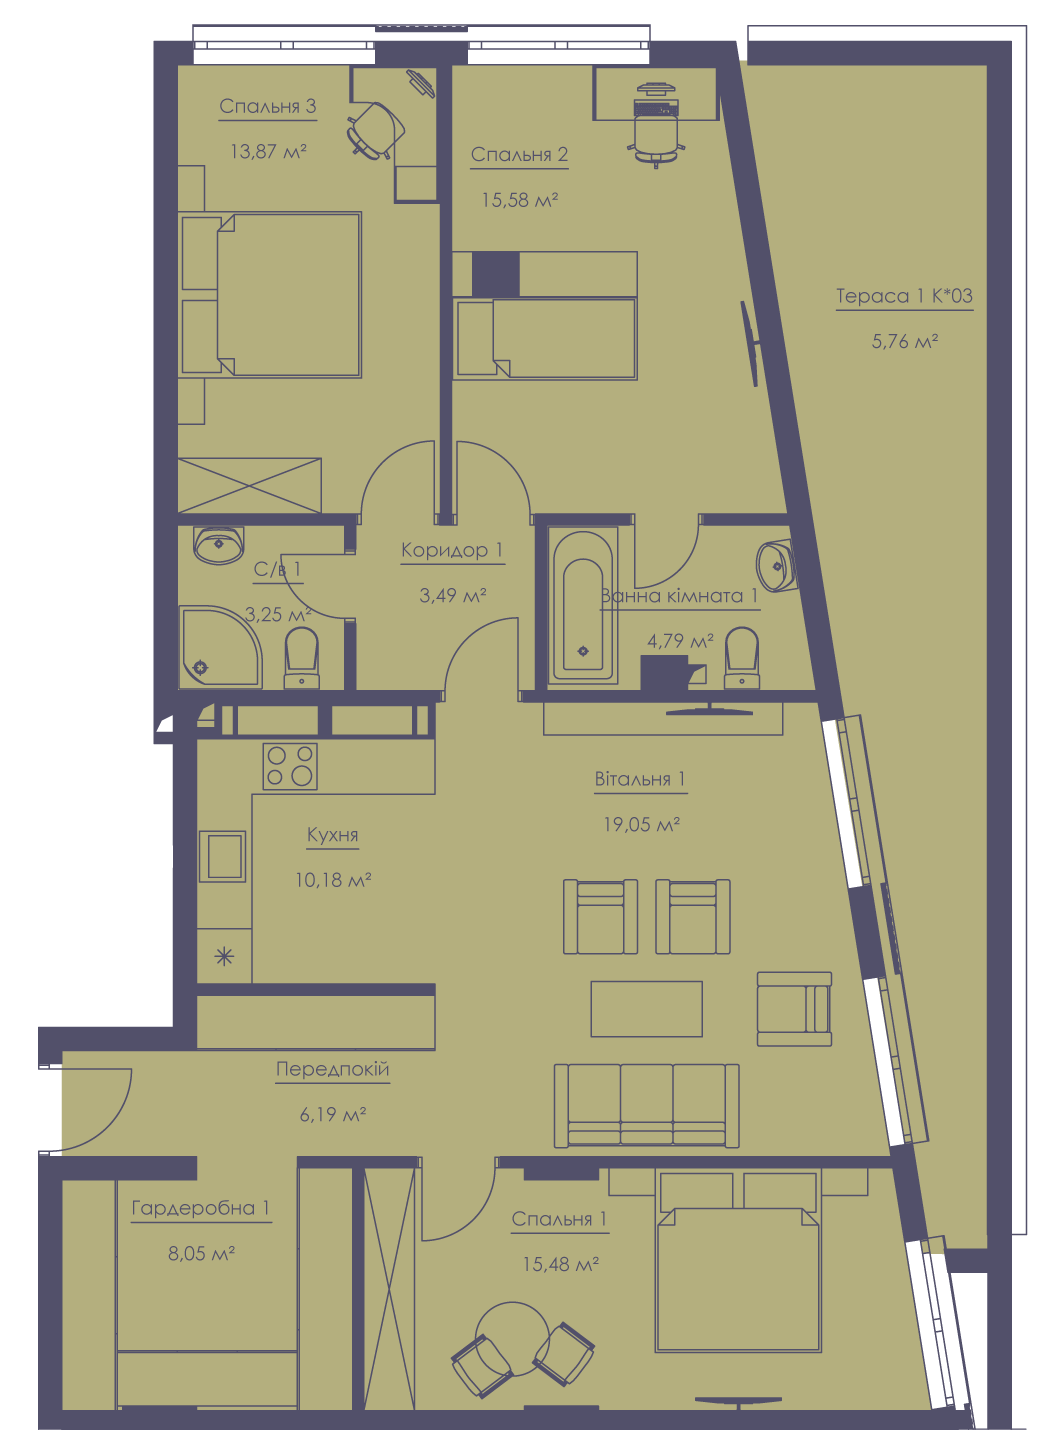 Apartment layout KV_155_3.4g_1_1_11-1